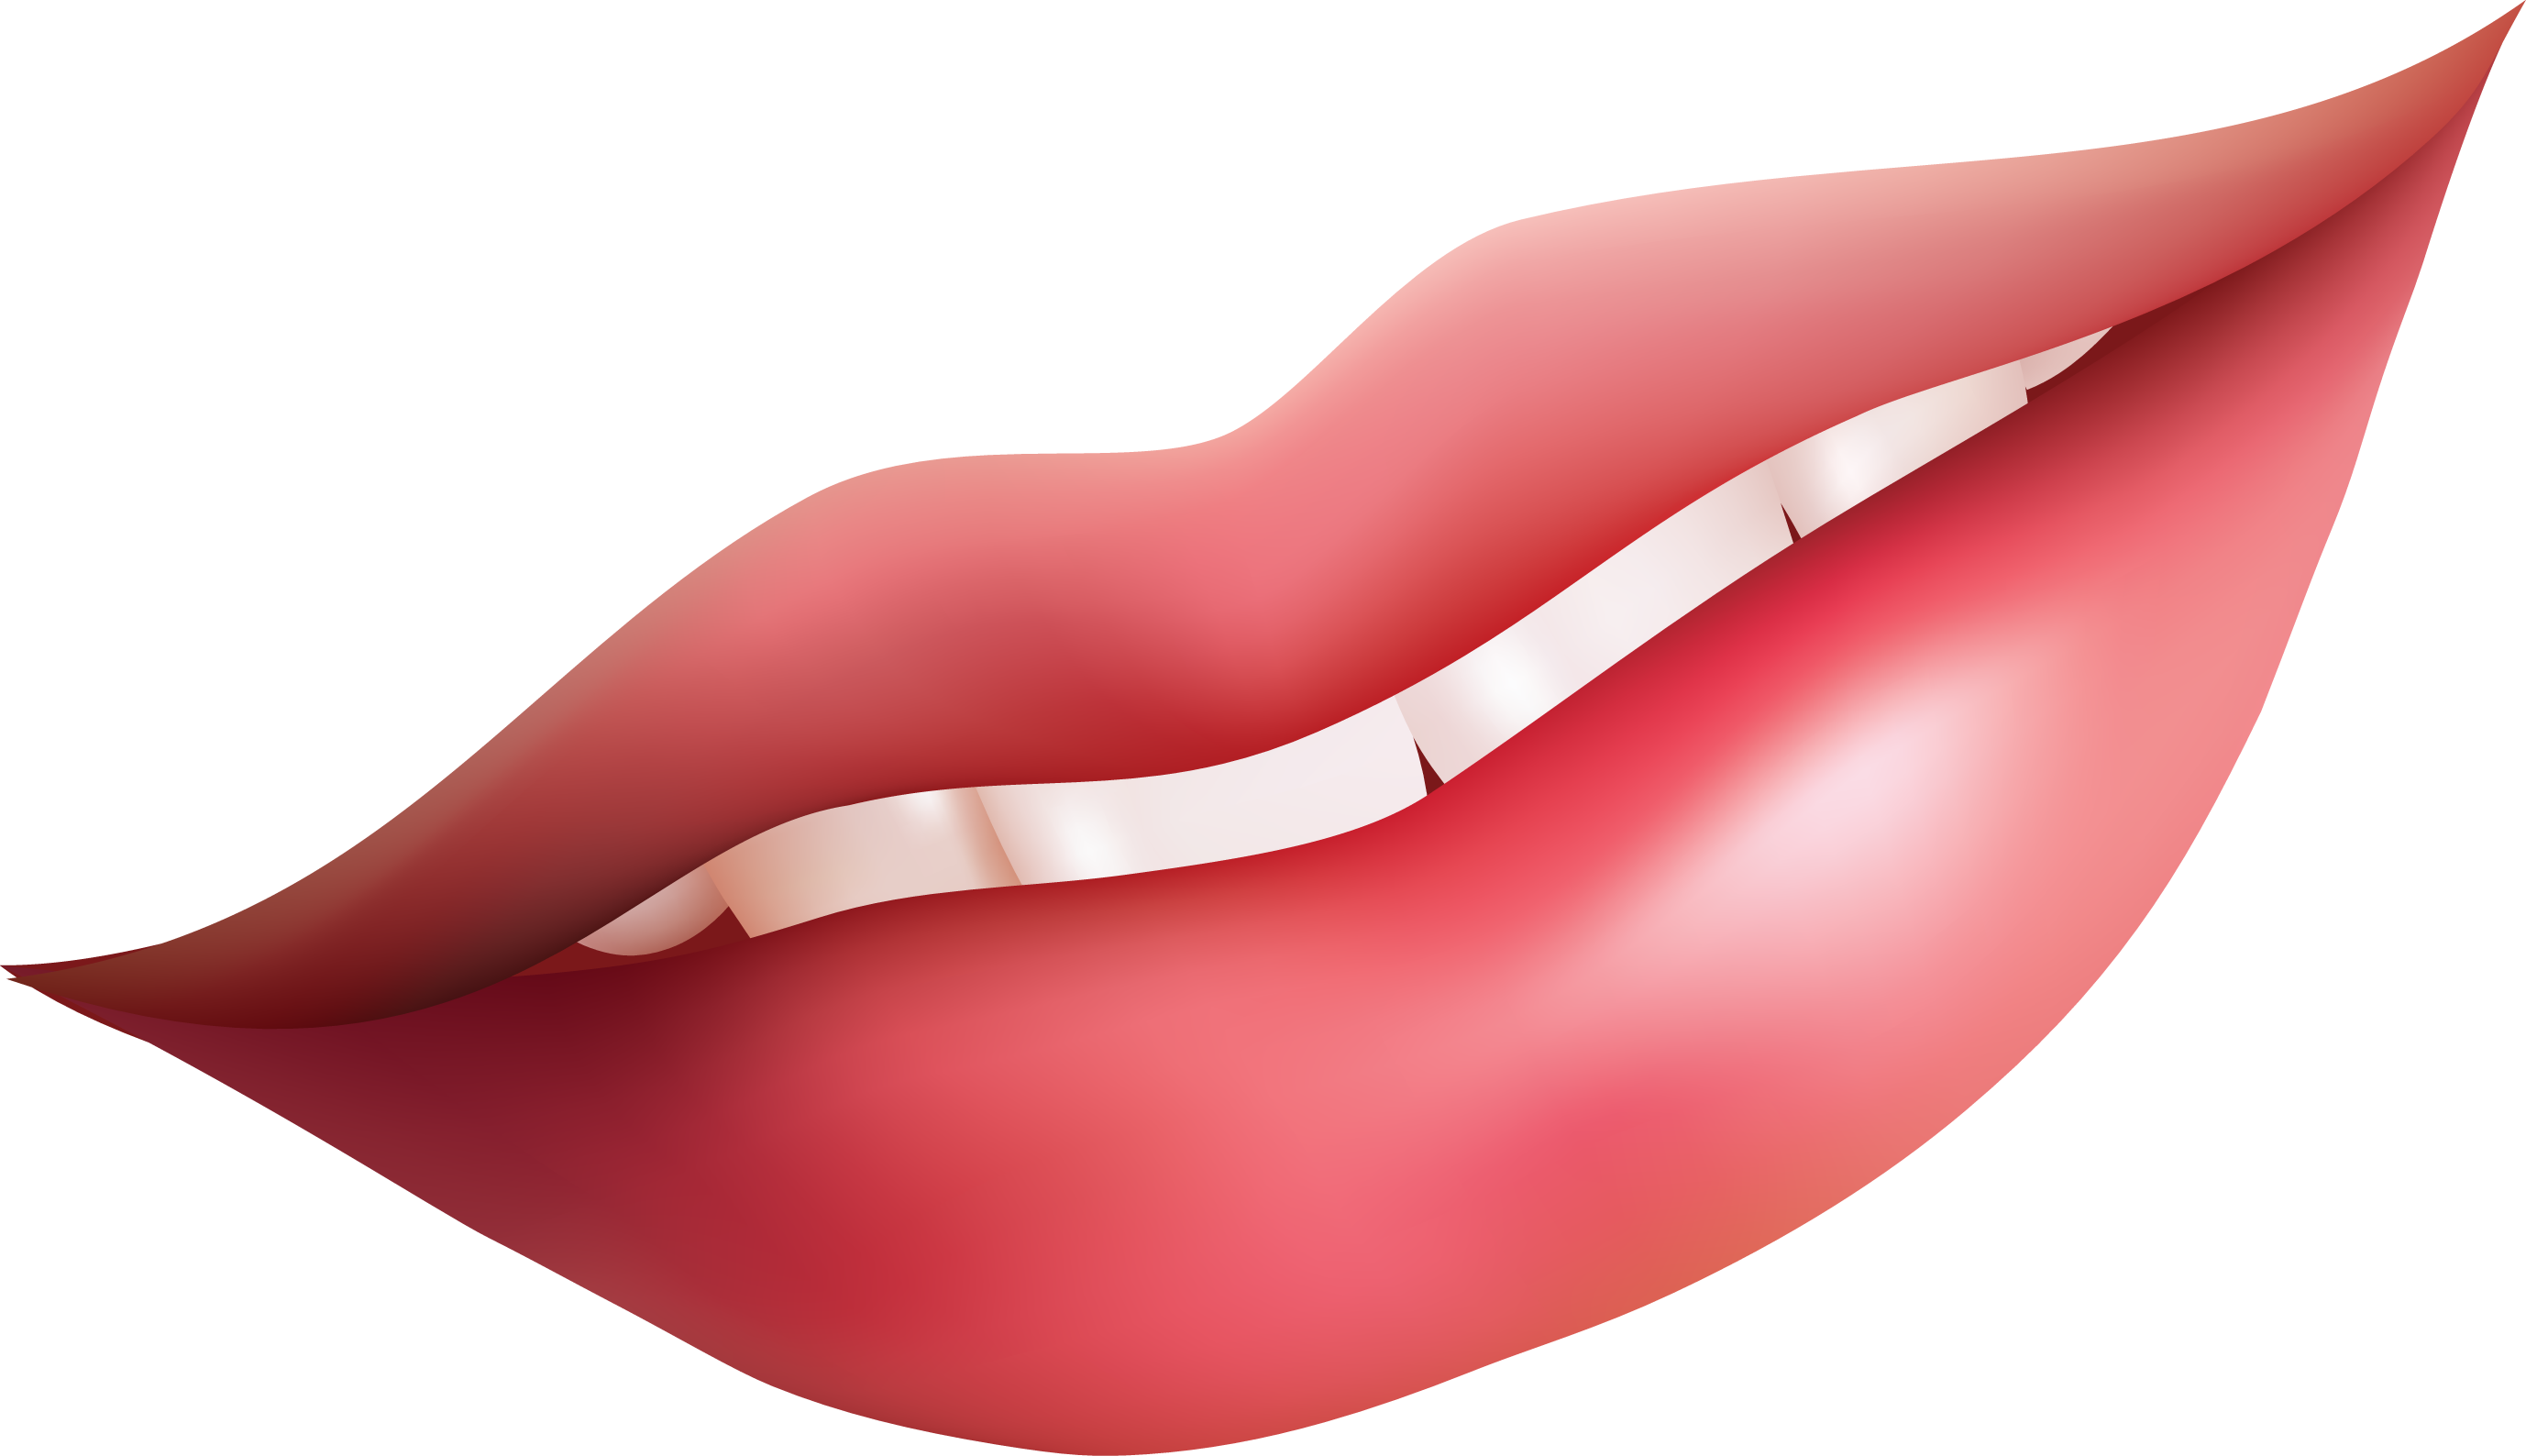 Lips clipart turquoise. Open mouth image clipartix